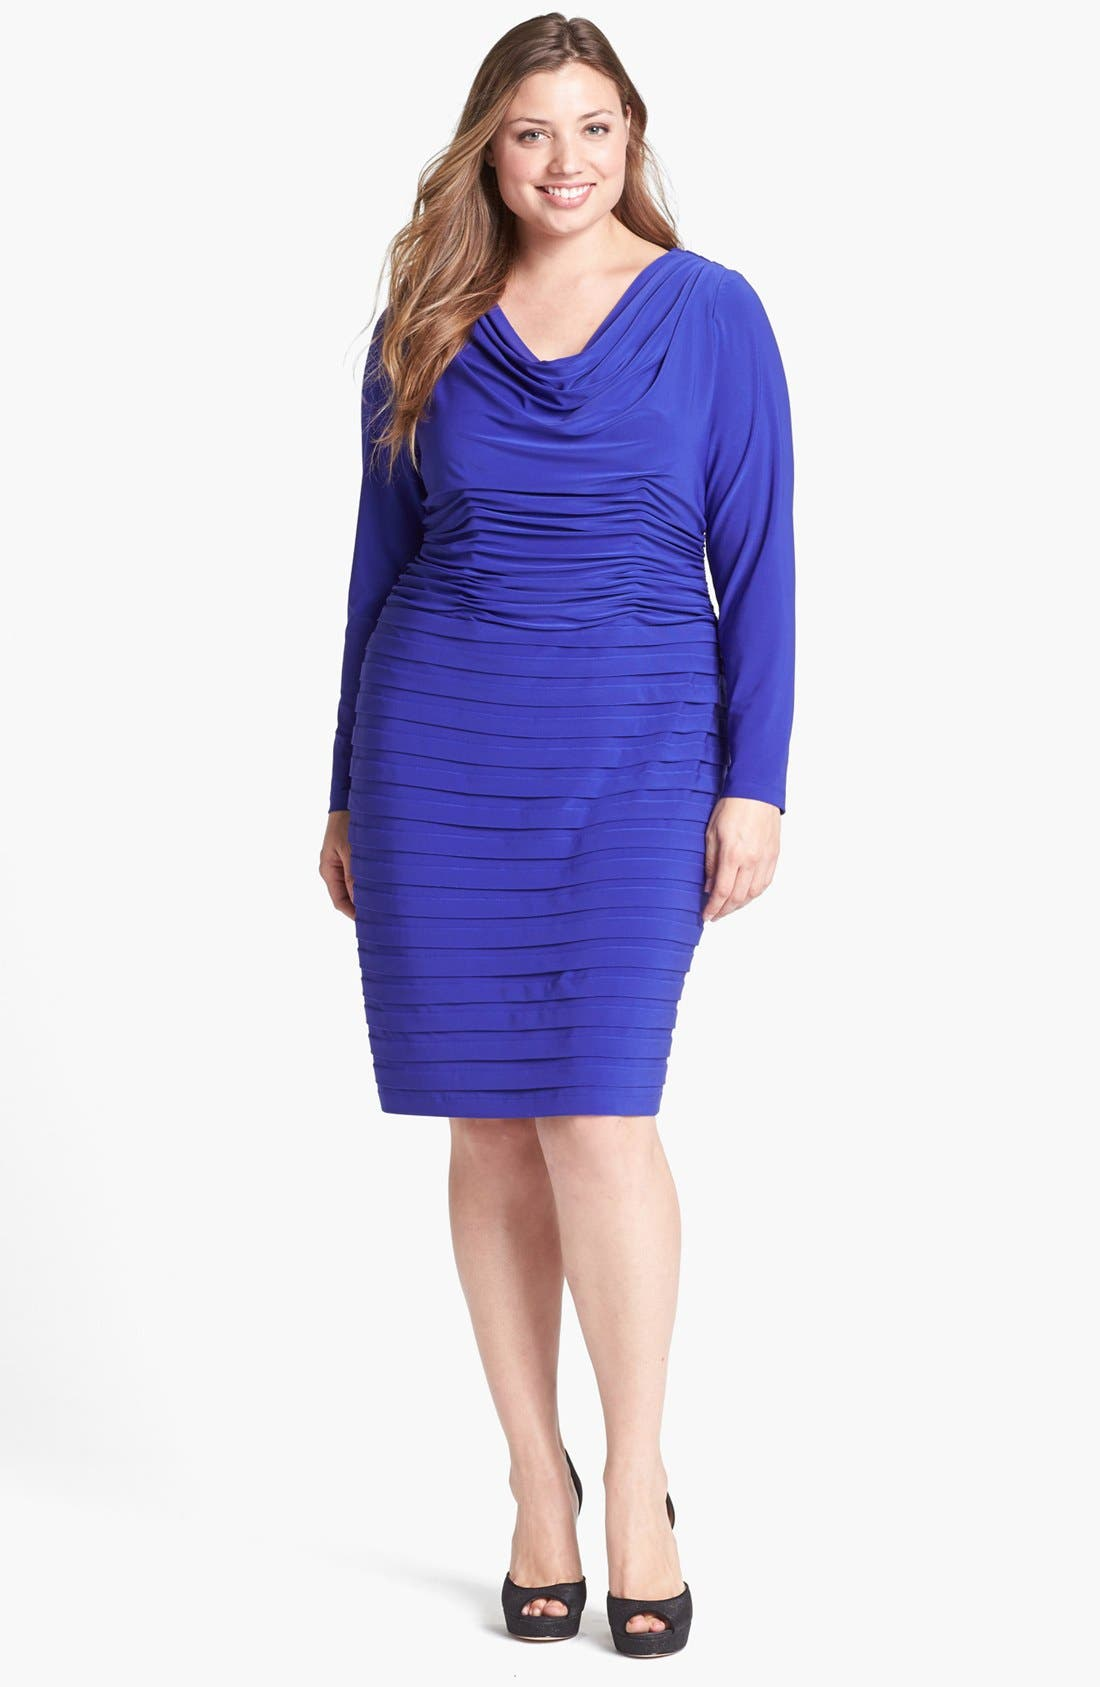 Alternate Image 1 Selected - Adrianna Papell Shutter Pleat Jersey Dress (Plus Size)